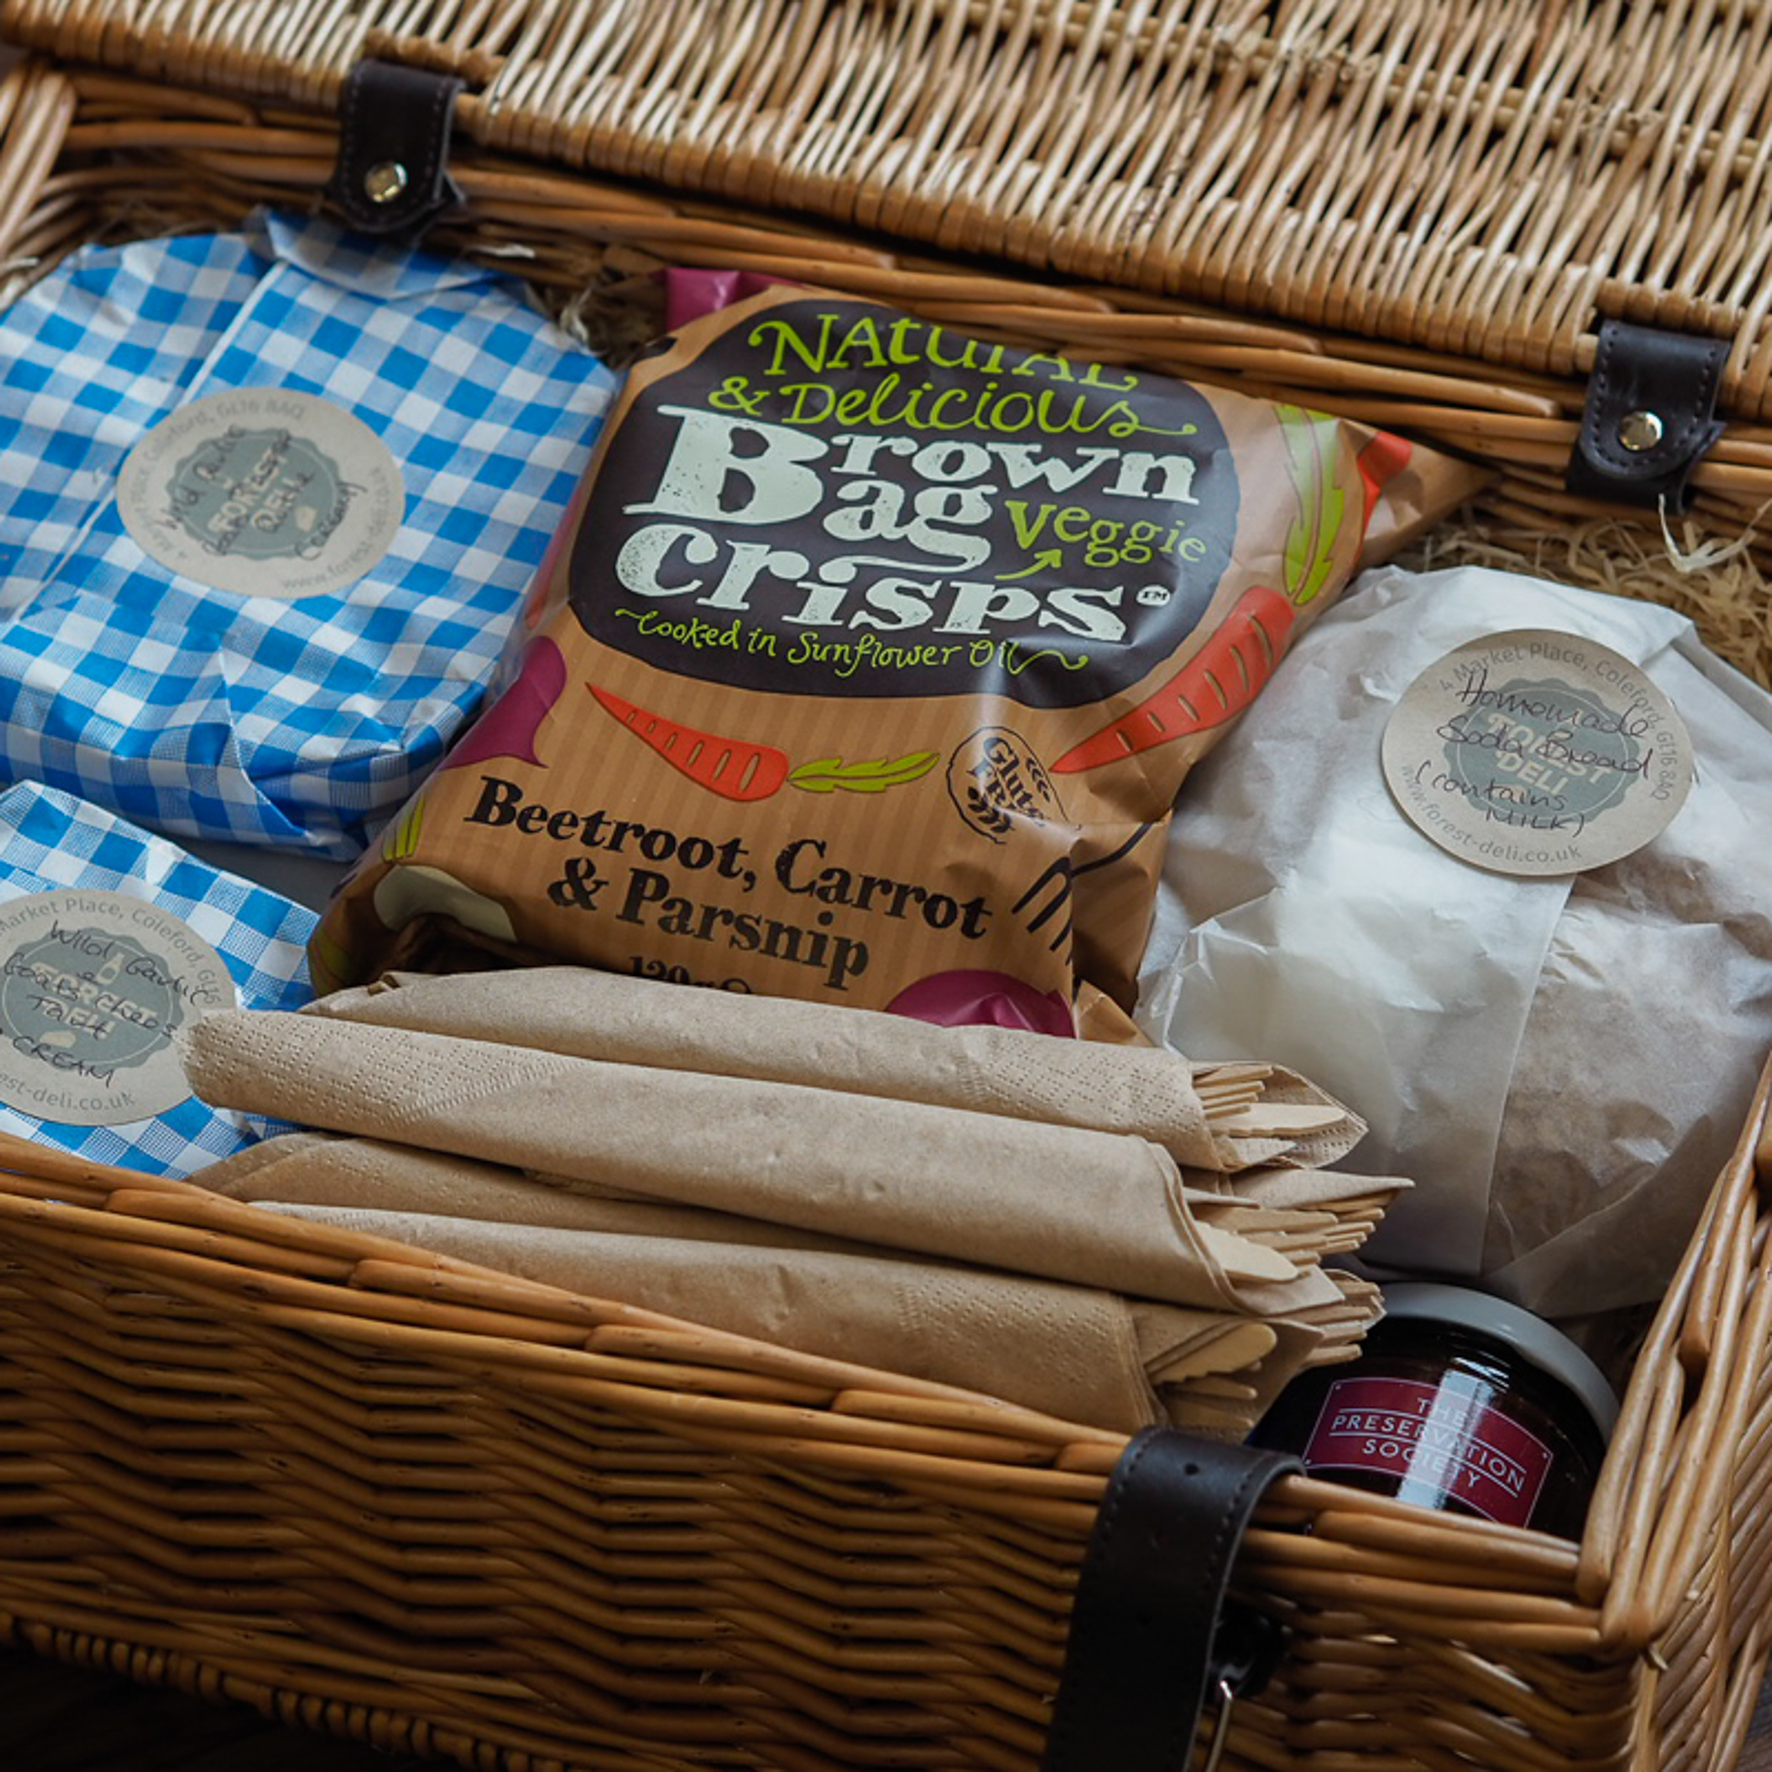 Let us put together a fabulous picnic full of local Gloucestershire food delights and homemade bakes